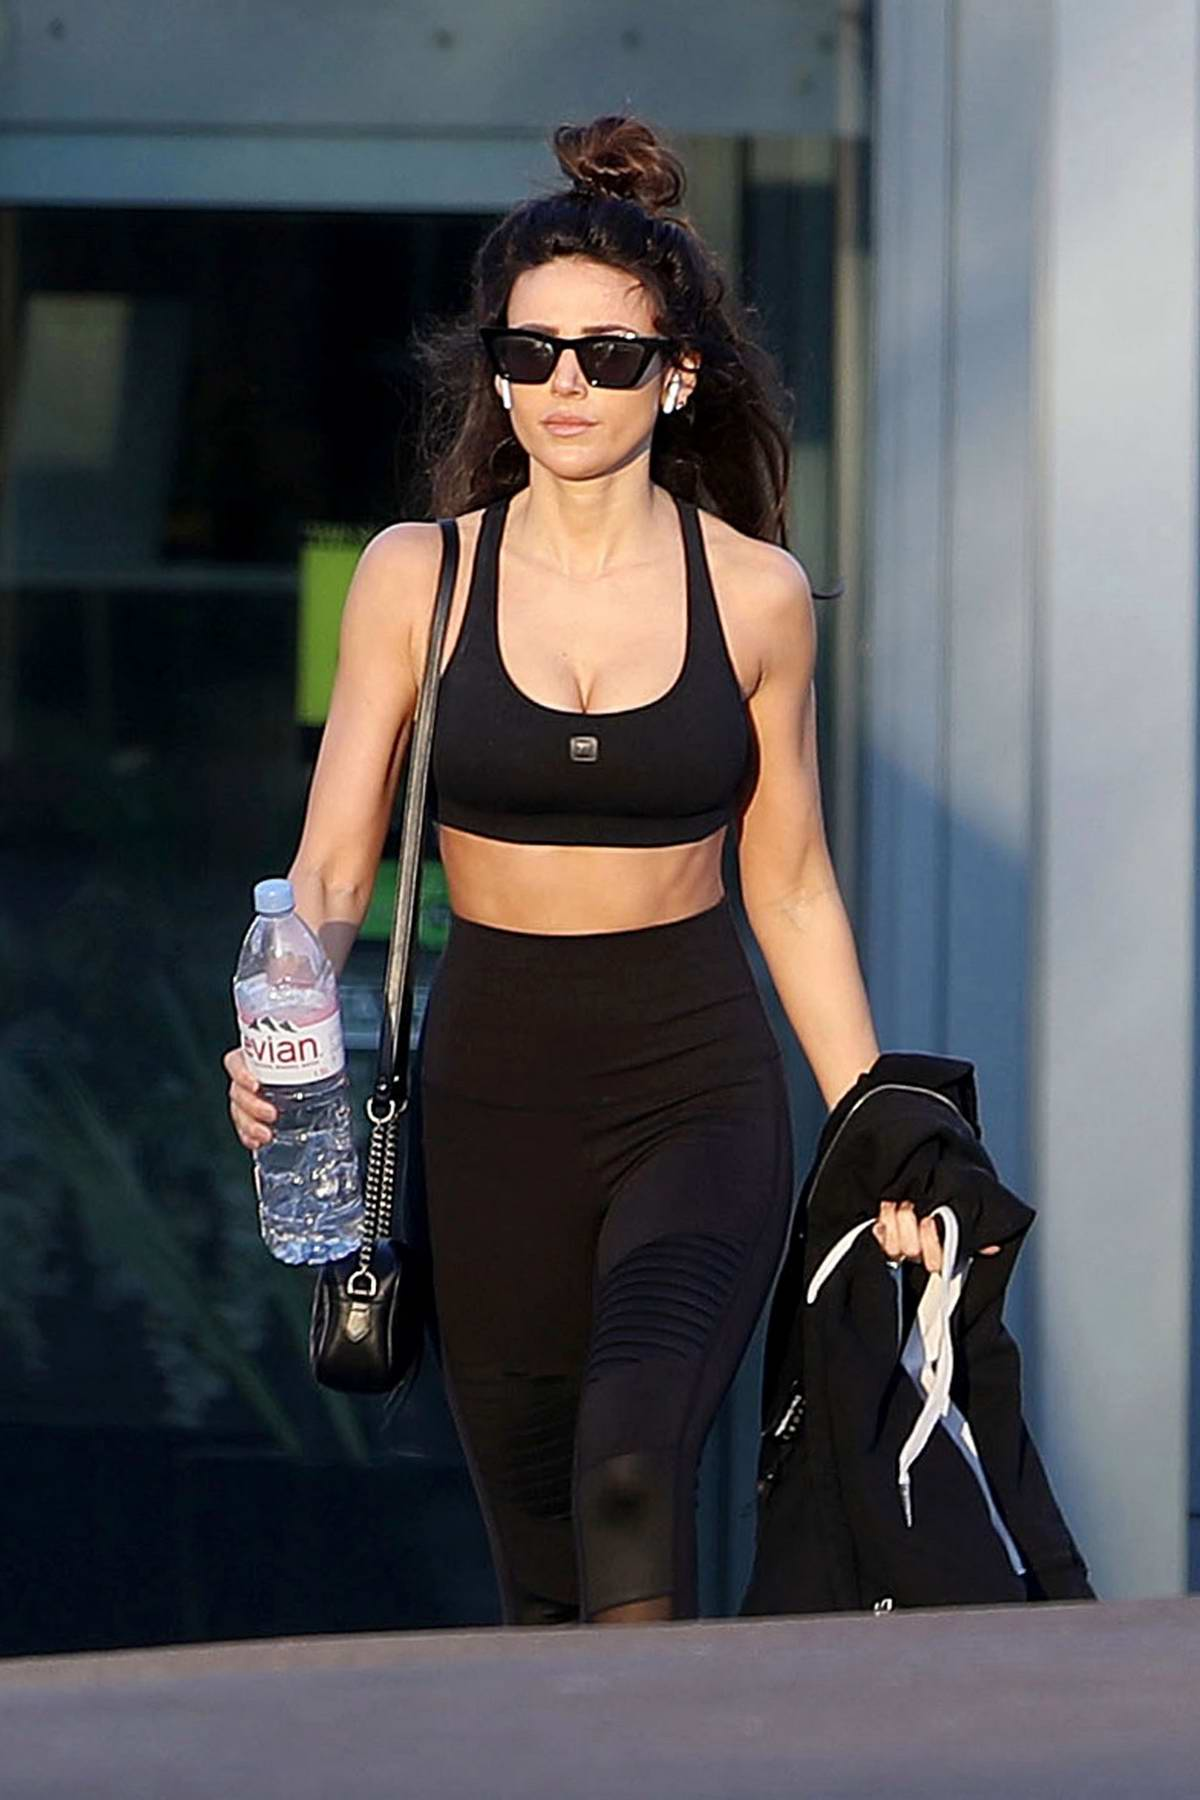 Michelle Keegan seen leaving Essex Fitness Centre in Essex, UK